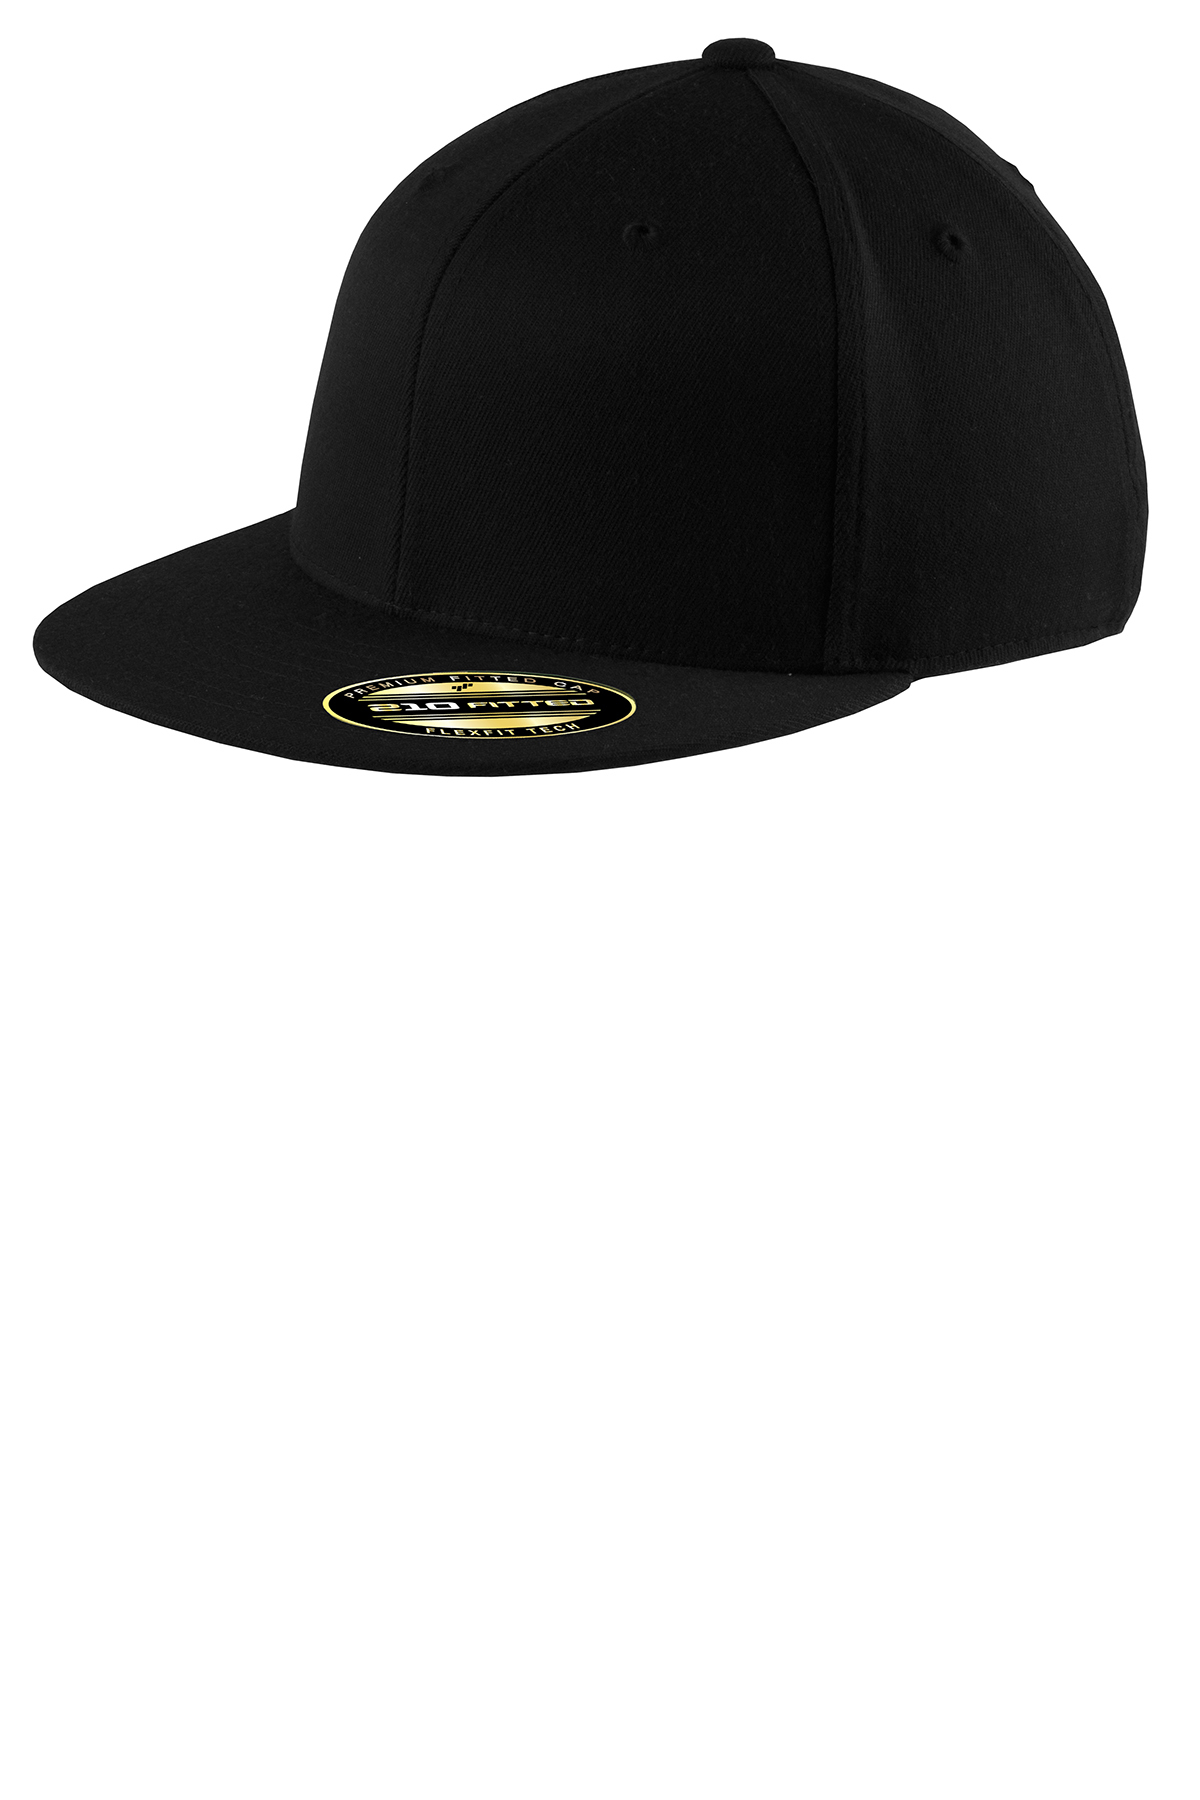 938c501689b Port Authority® Flexfit® Flat Bill Cap. Brand Logo